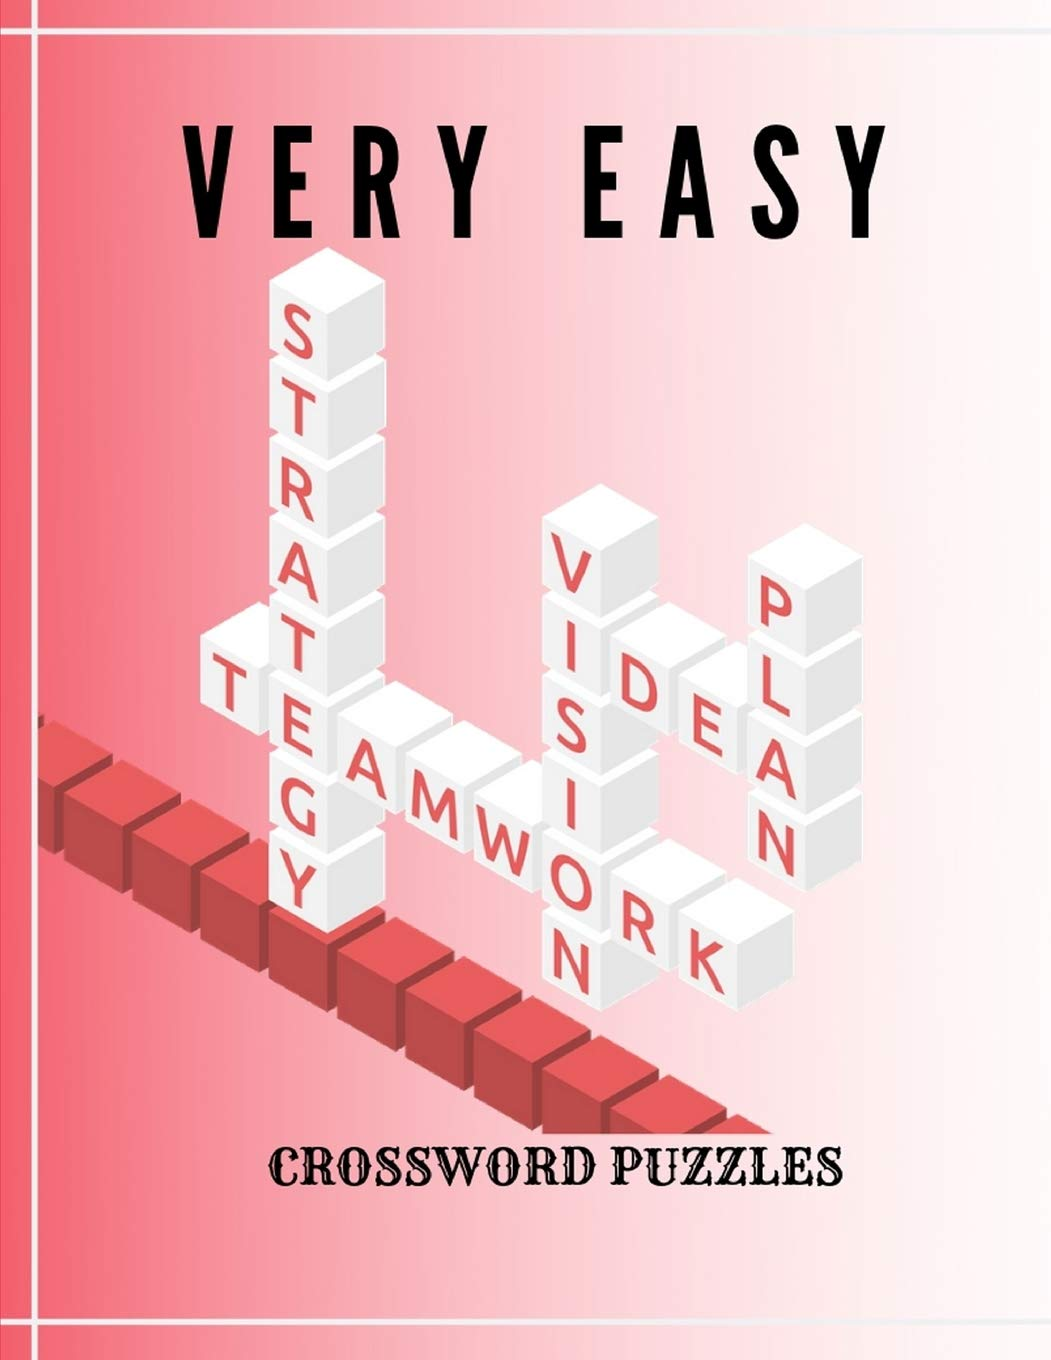 Very Easy Crossword Puzzles The Fun And Stress Relief Activity Book With Brain Games Easy Crossword Puzzles For The Ultimate Word Search Fan Gordek Kreteh T 9781096597810 Amazon Com Books